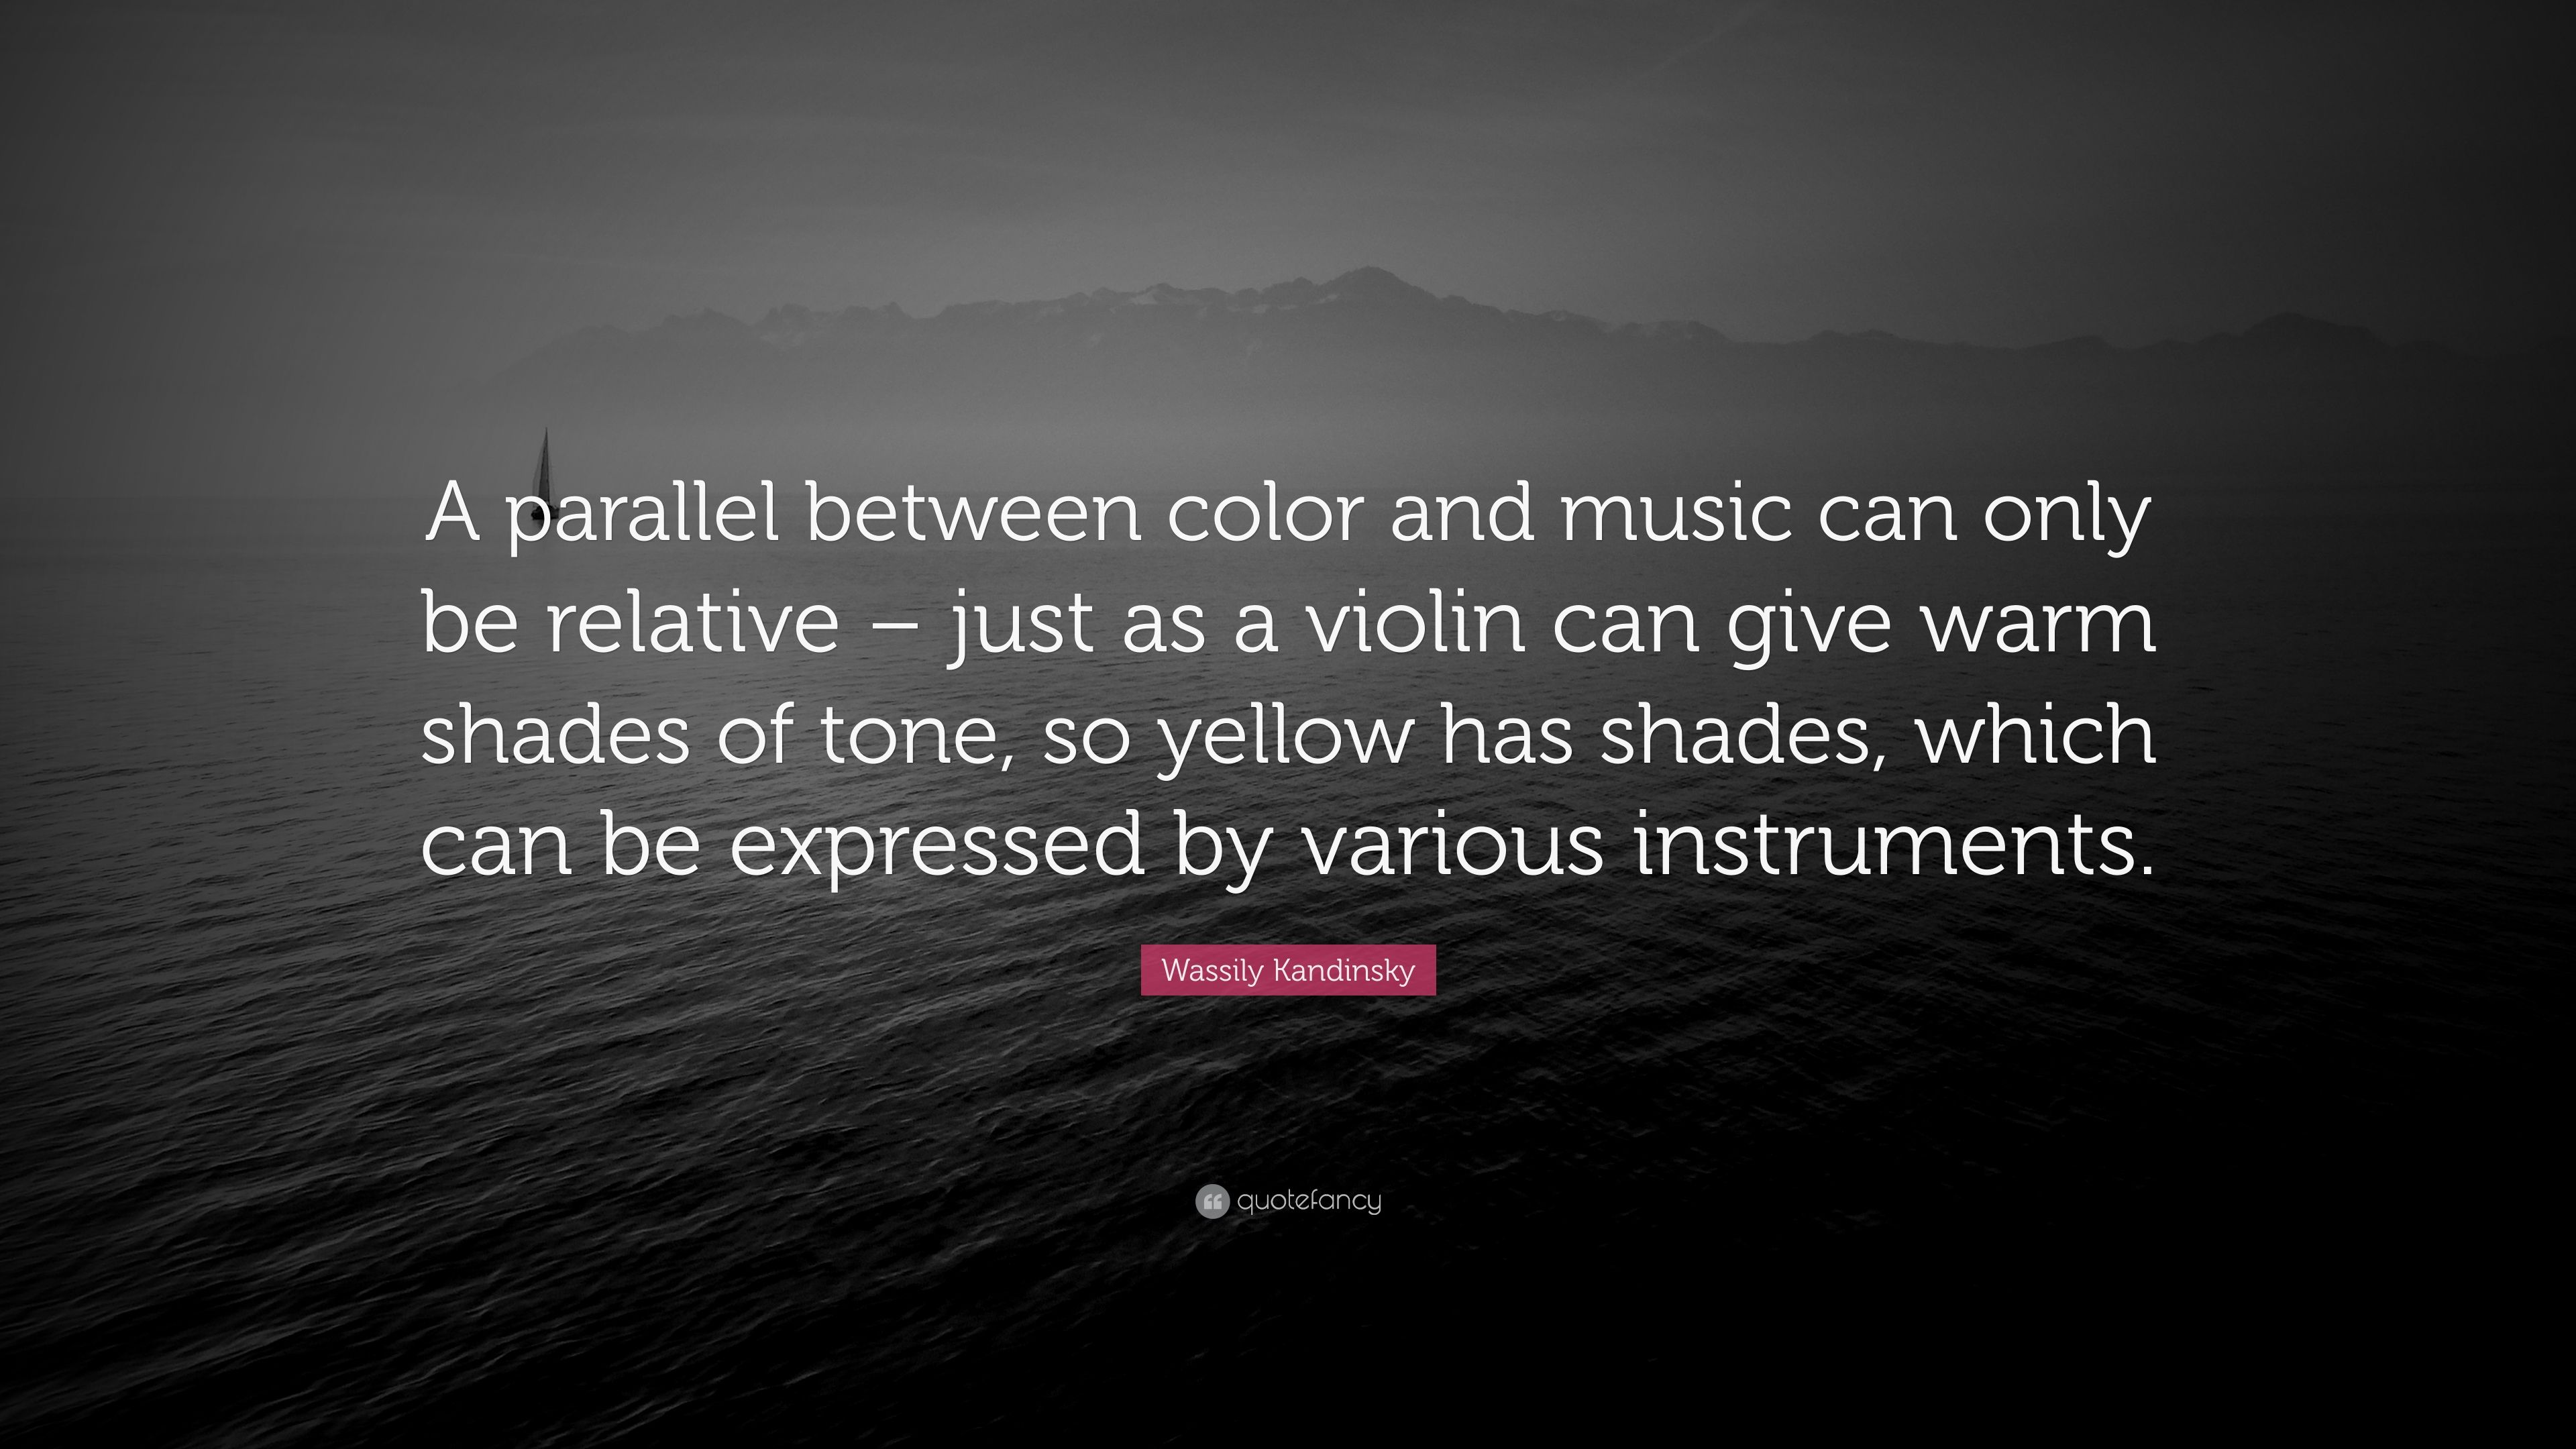 Great Wallpaper Music Tone - 3414969-Wassily-Kandinsky-Quote-A-parallel-between-color-and-music-can  You Should Have_175046.jpg